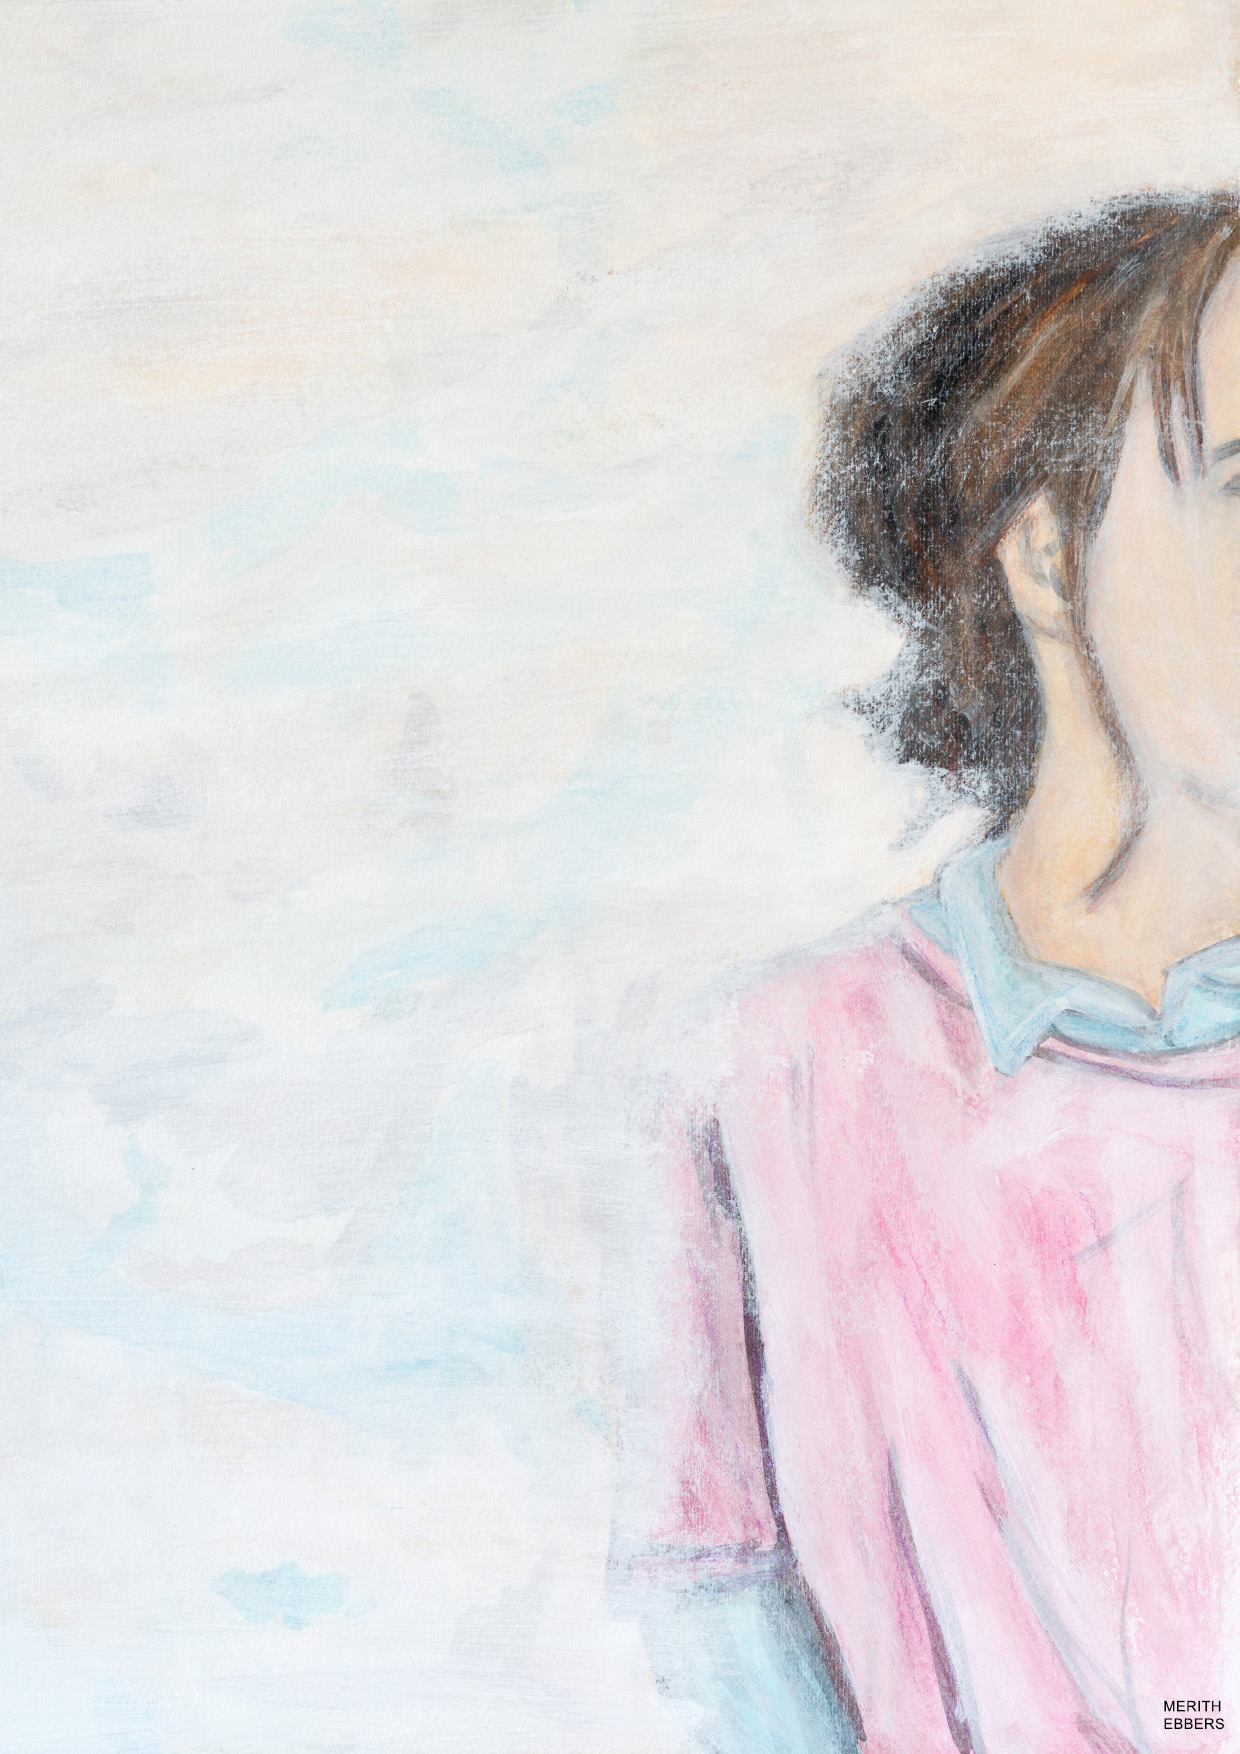 I Witness and Wait - a portrait painting inspired by Pierre Teilhard de Chardin